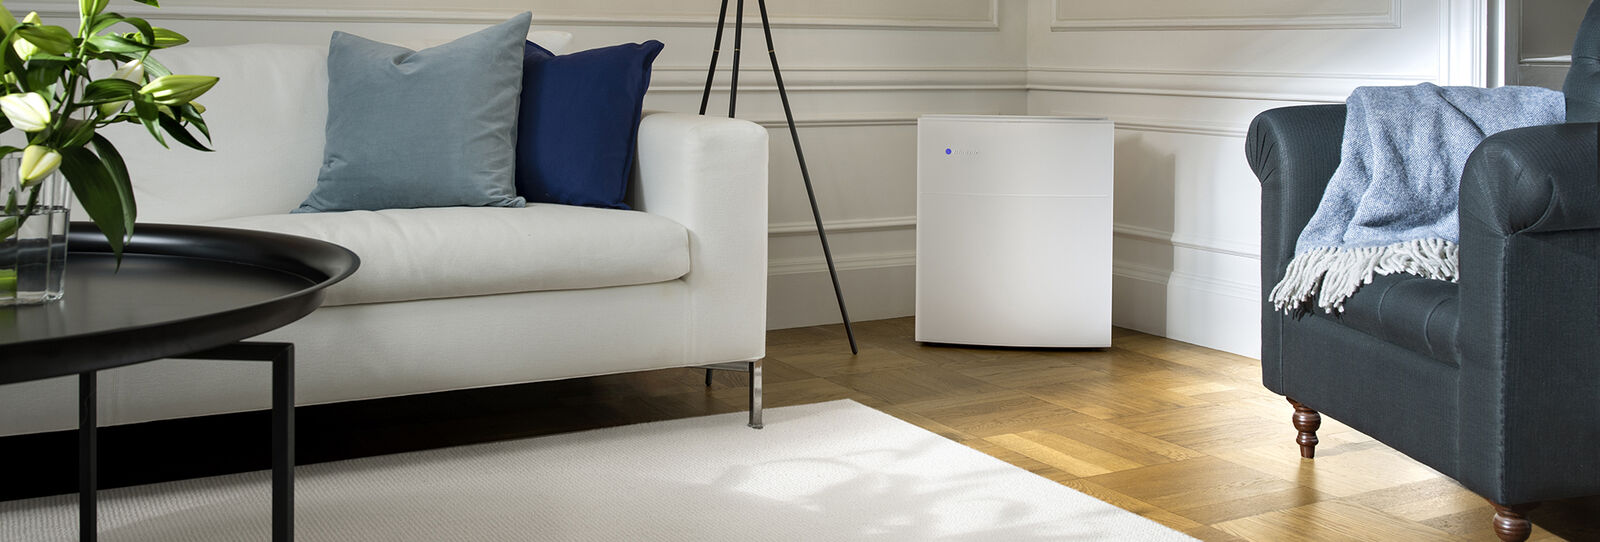 Blueair  Large room air purifiers  large-room-banner